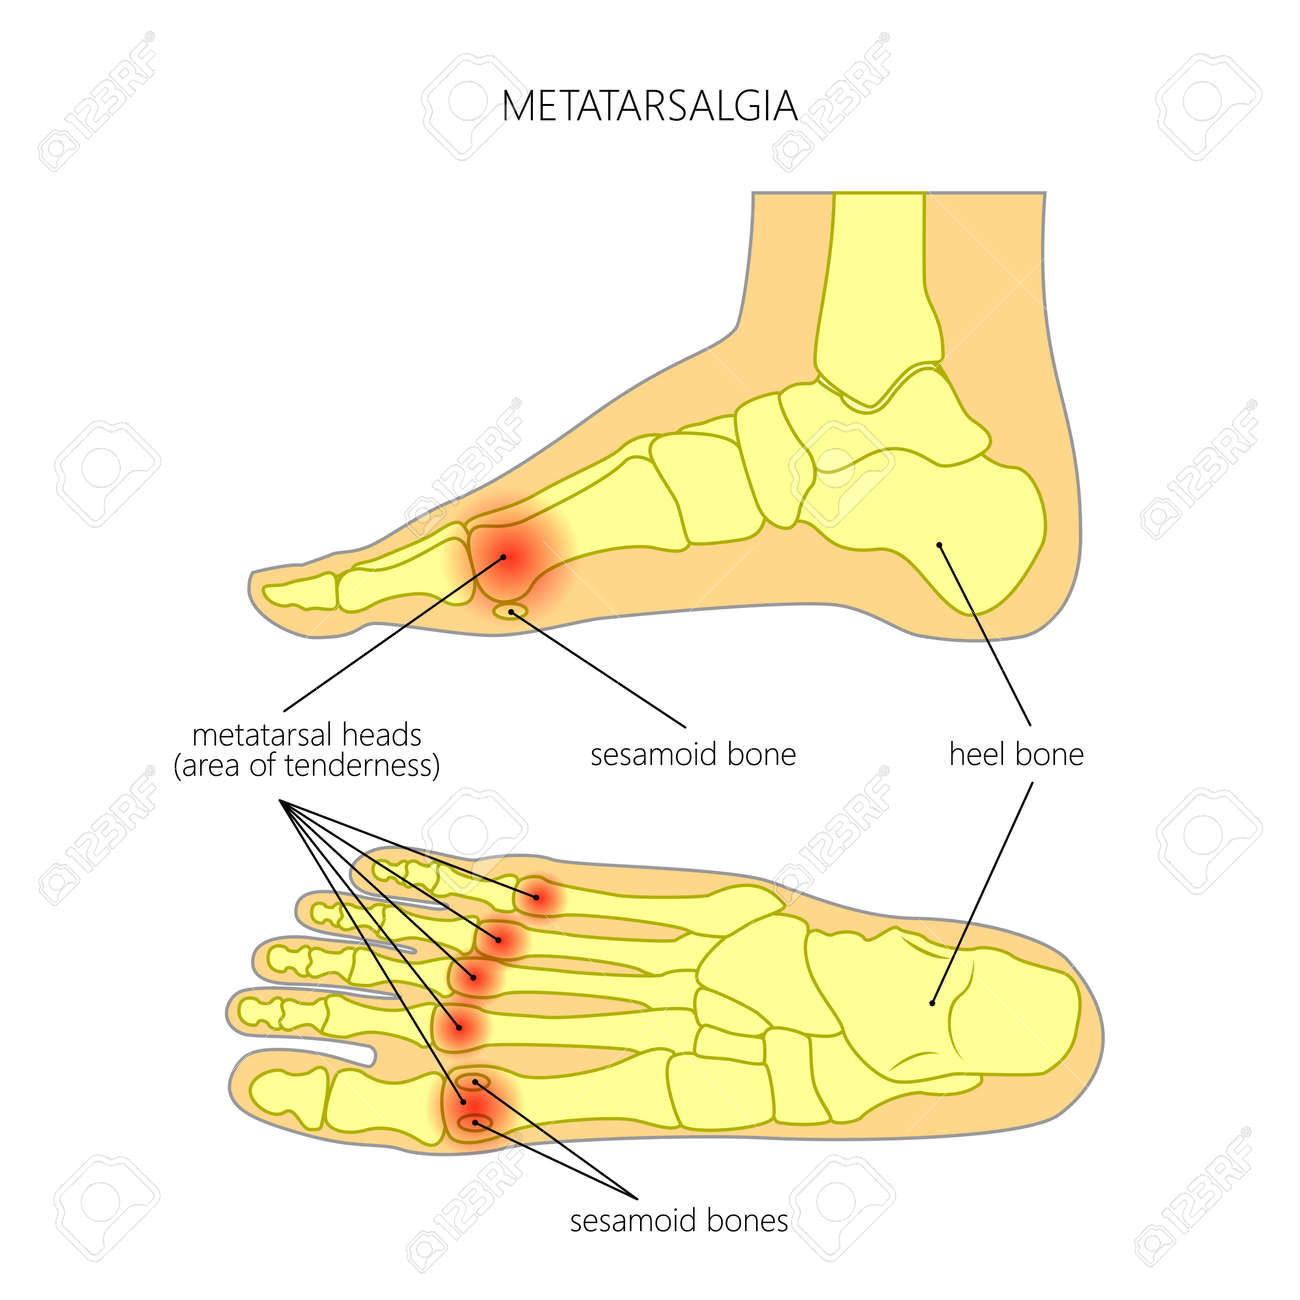 vector - vector diagram of forefoot pain, metatarsalgia symptom, tenderness  in the balls of metatarsal bones of the foot  used: gradient, transparency